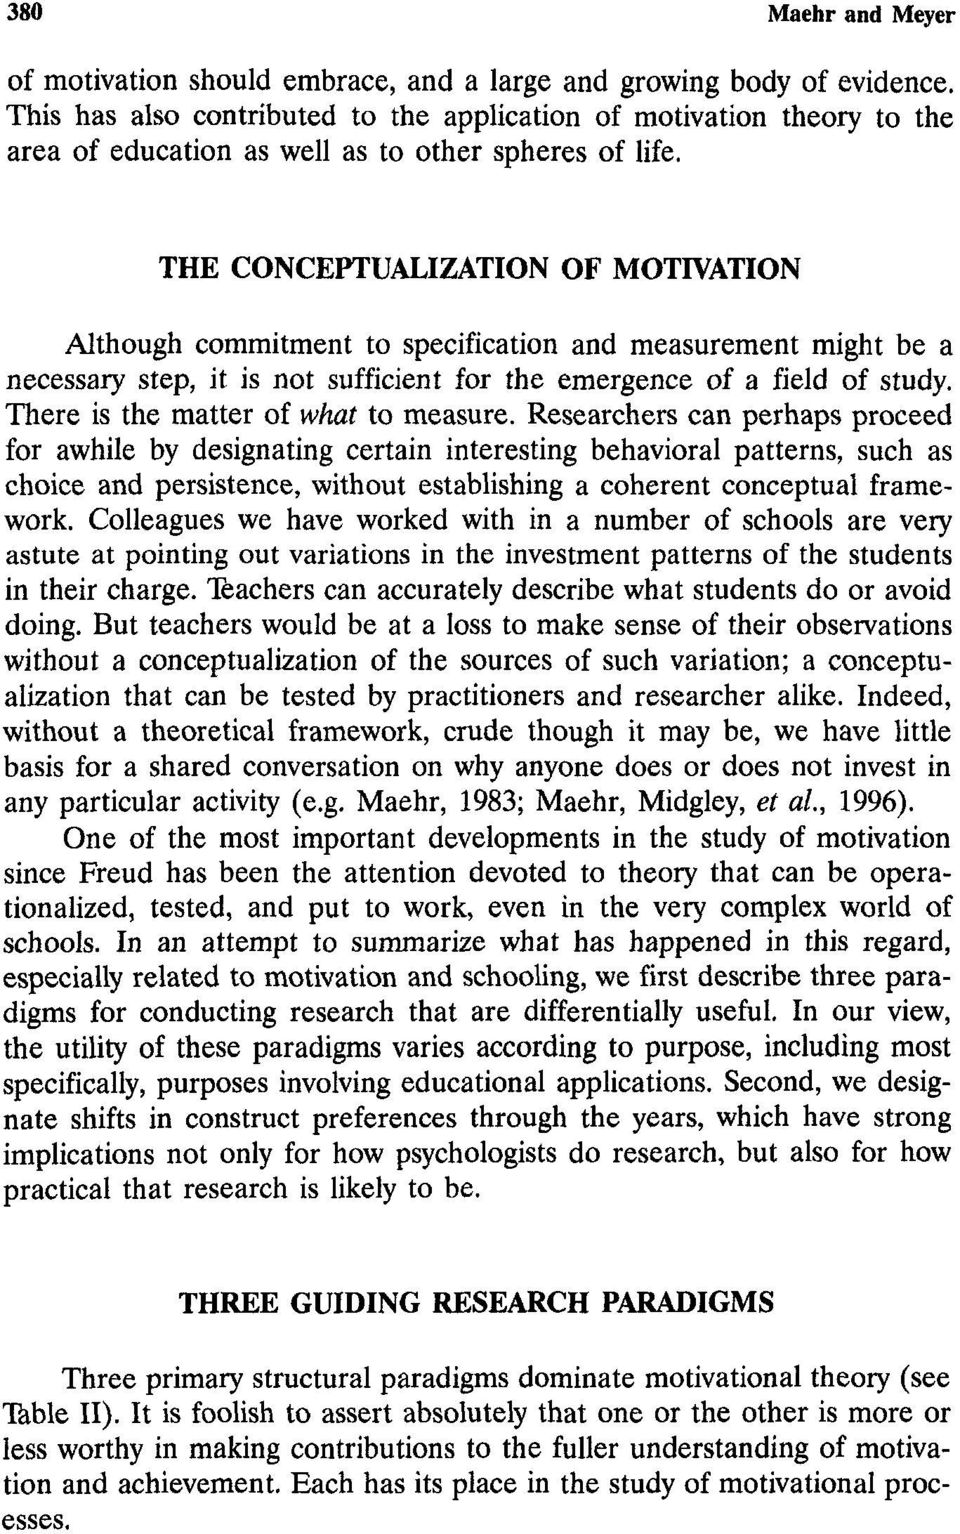 THE CONCEPTUALIZATION OF MOTIVATION Although commitment to specification and measurement might be a necessary step, it is not sufficient for the emergence of a field of study.